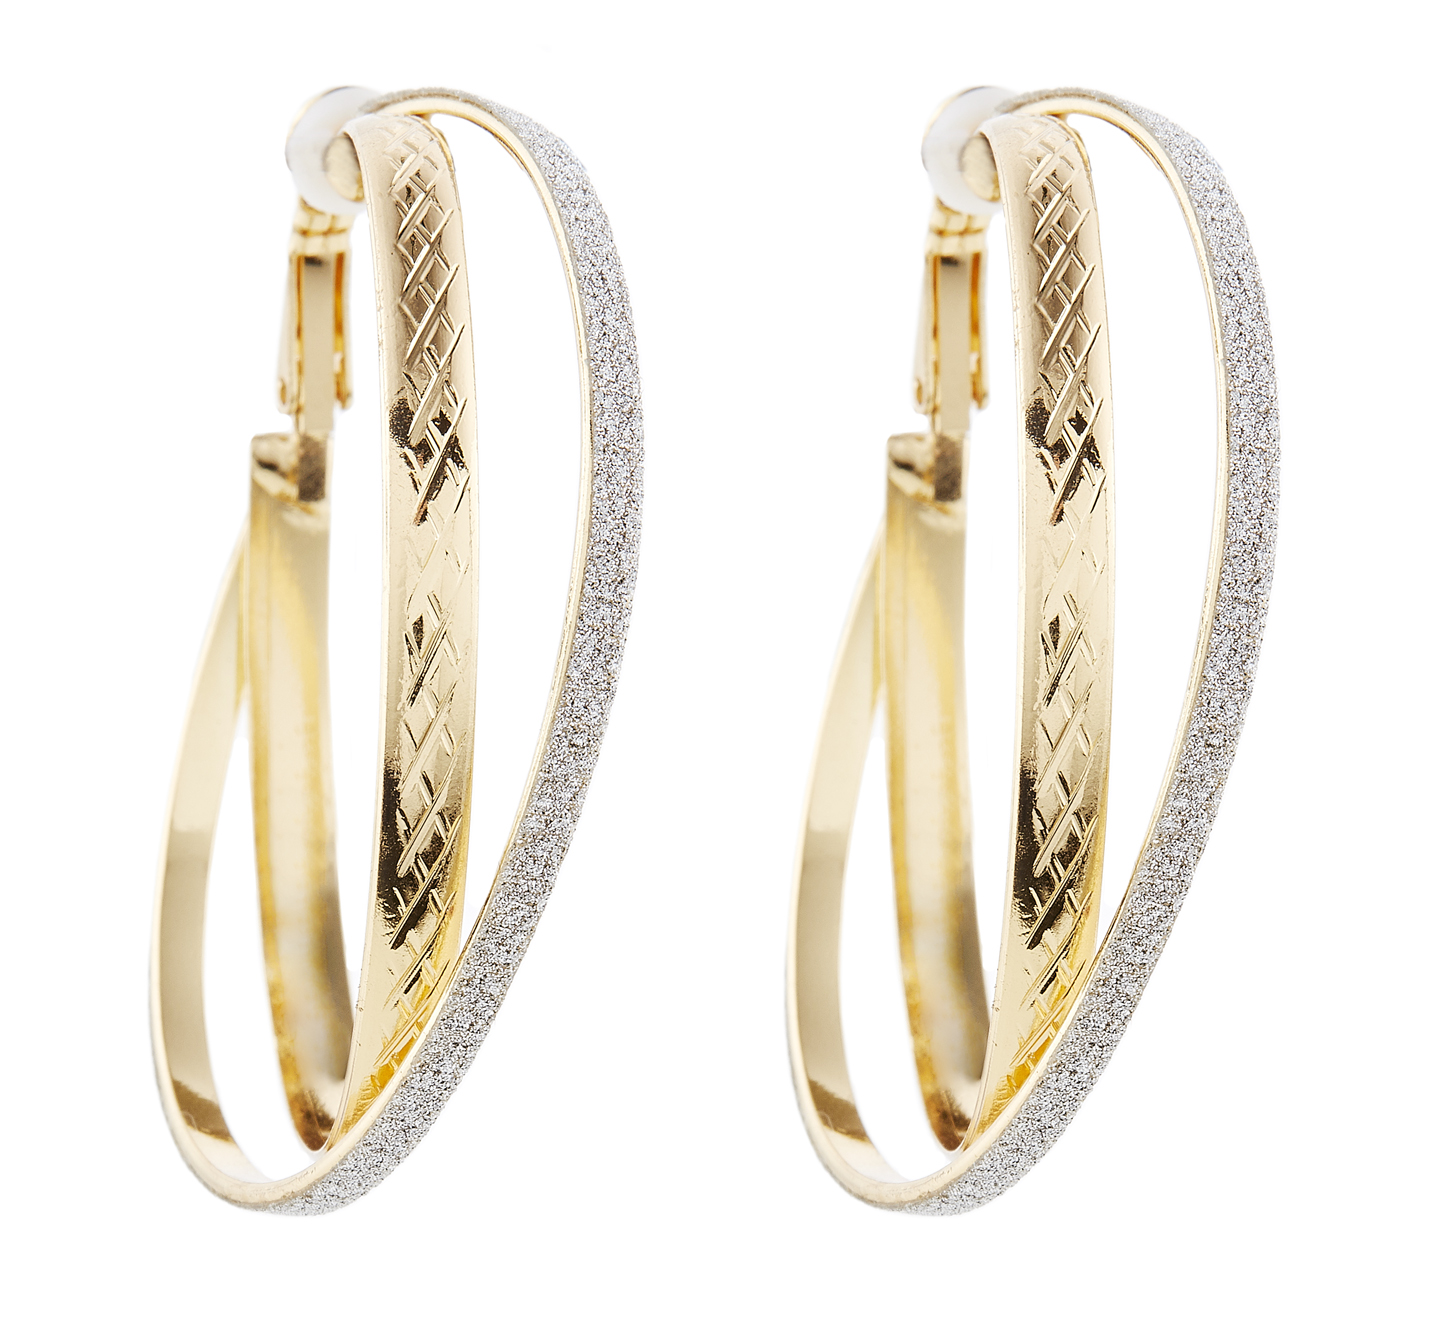 Clip On Hoop Earrings - Kanti G - gold earring with two hoops